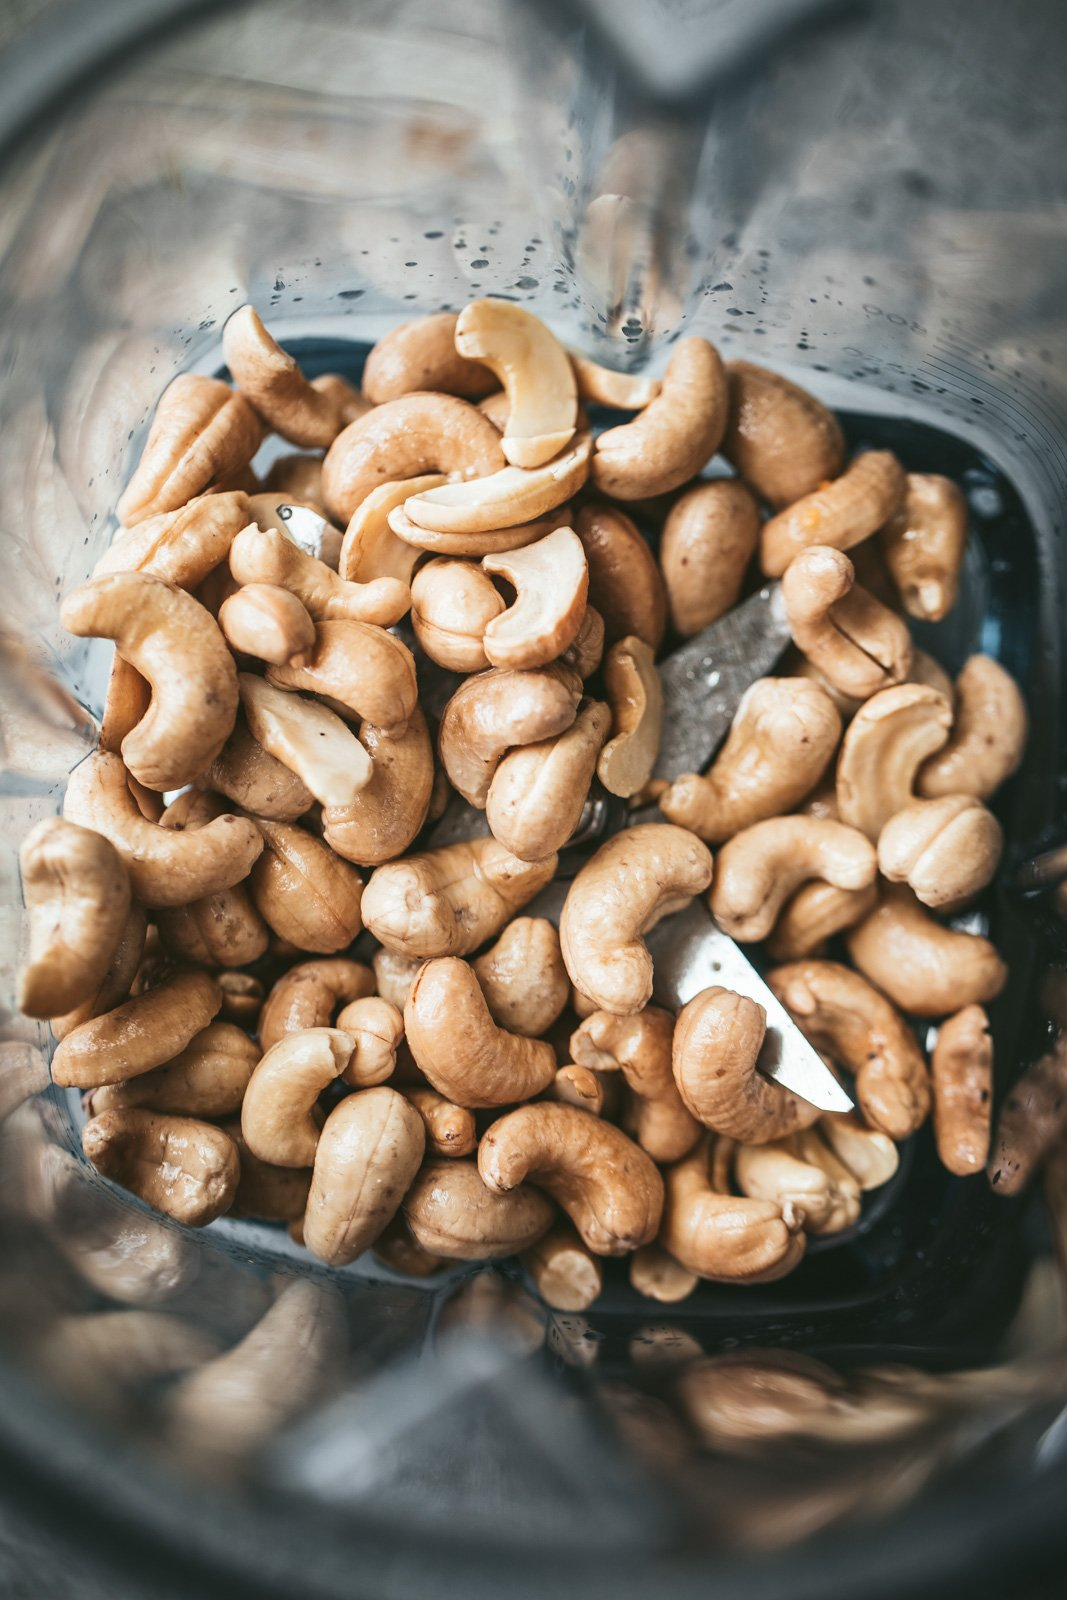 cashews in a blender to make vegan sweet potato cream sauce